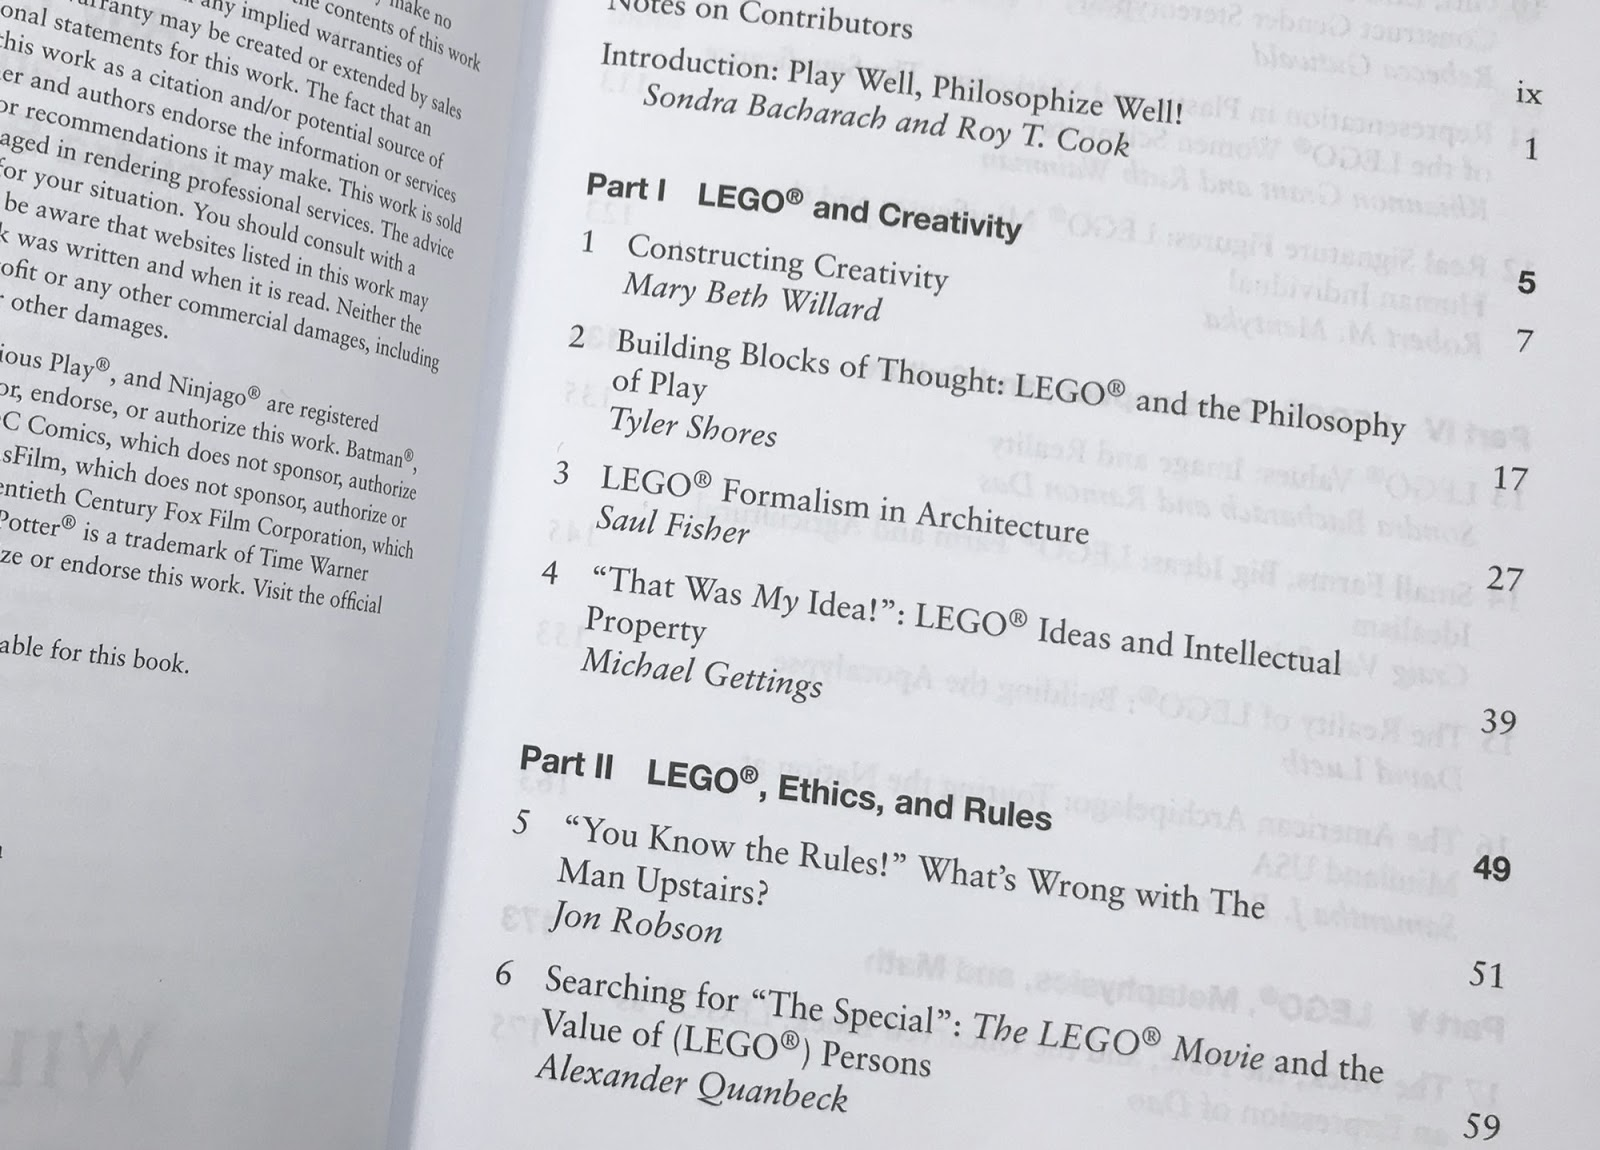 book review lego acirc reg and philosophy new elementary a lego acirc reg blog from the opening essay mary beth willard s constructing creativity there is a sense that lego building improves and aids human experience by developing